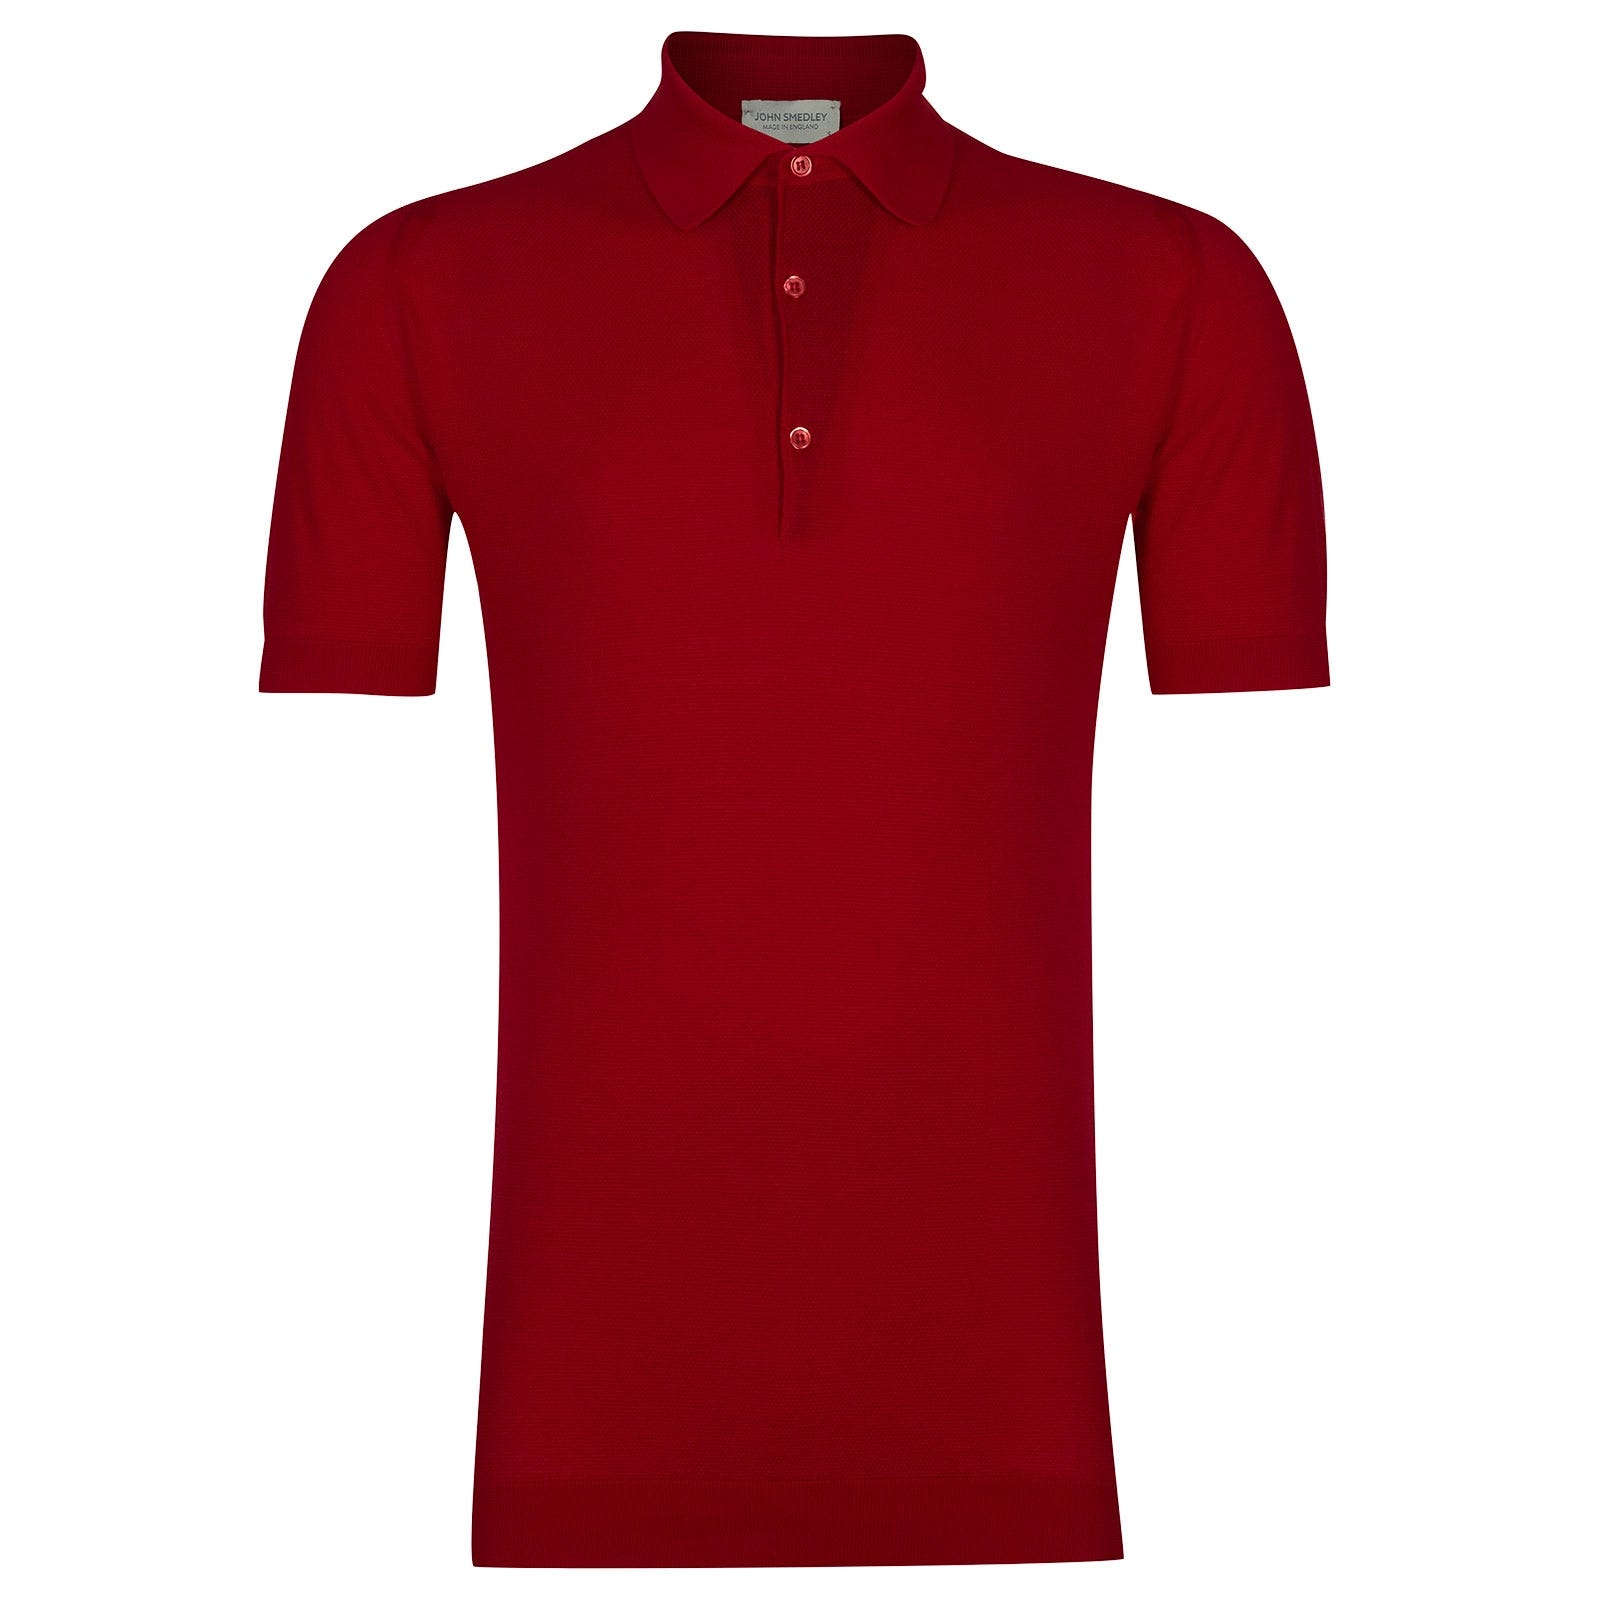 John Smedley Roth Sea Island Cotton Shirt in Dandy Red-XXL